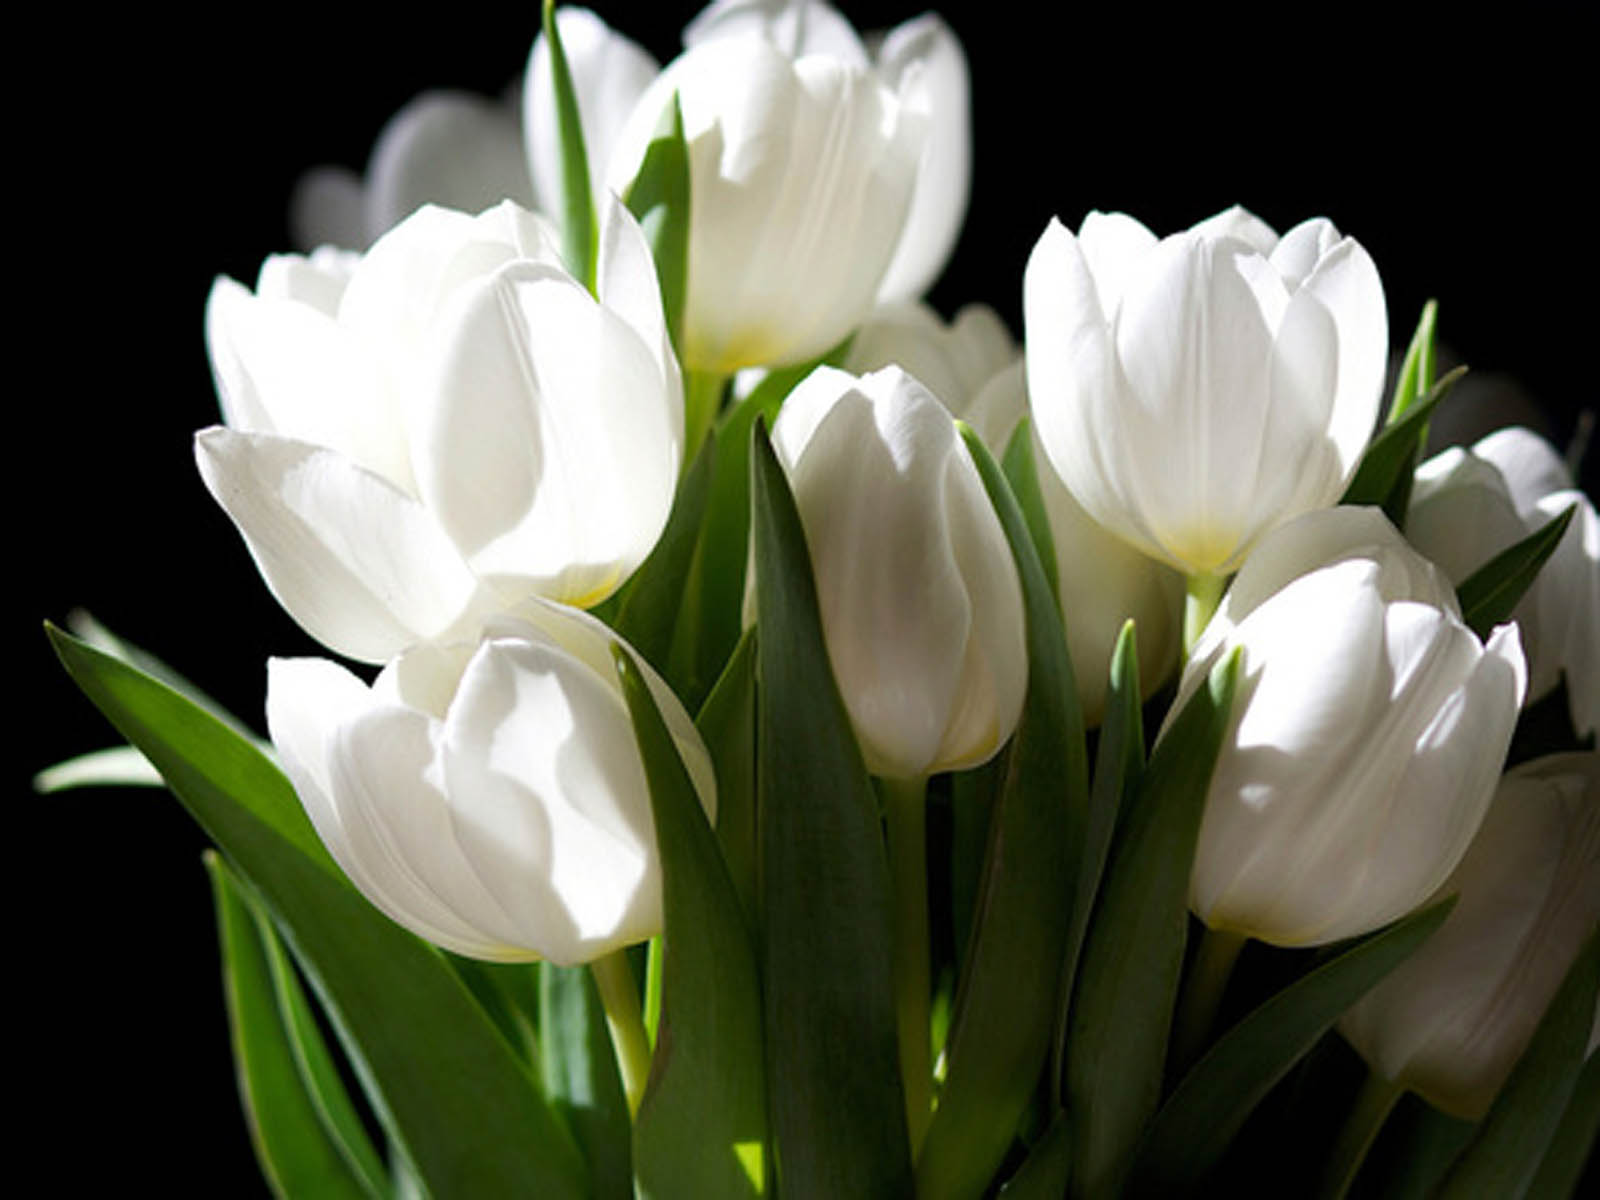 White tulips wallpaper wallpapersafari tulip flowers free high resolution beautiful tulip flowers wallpapers dhlflorist Image collections